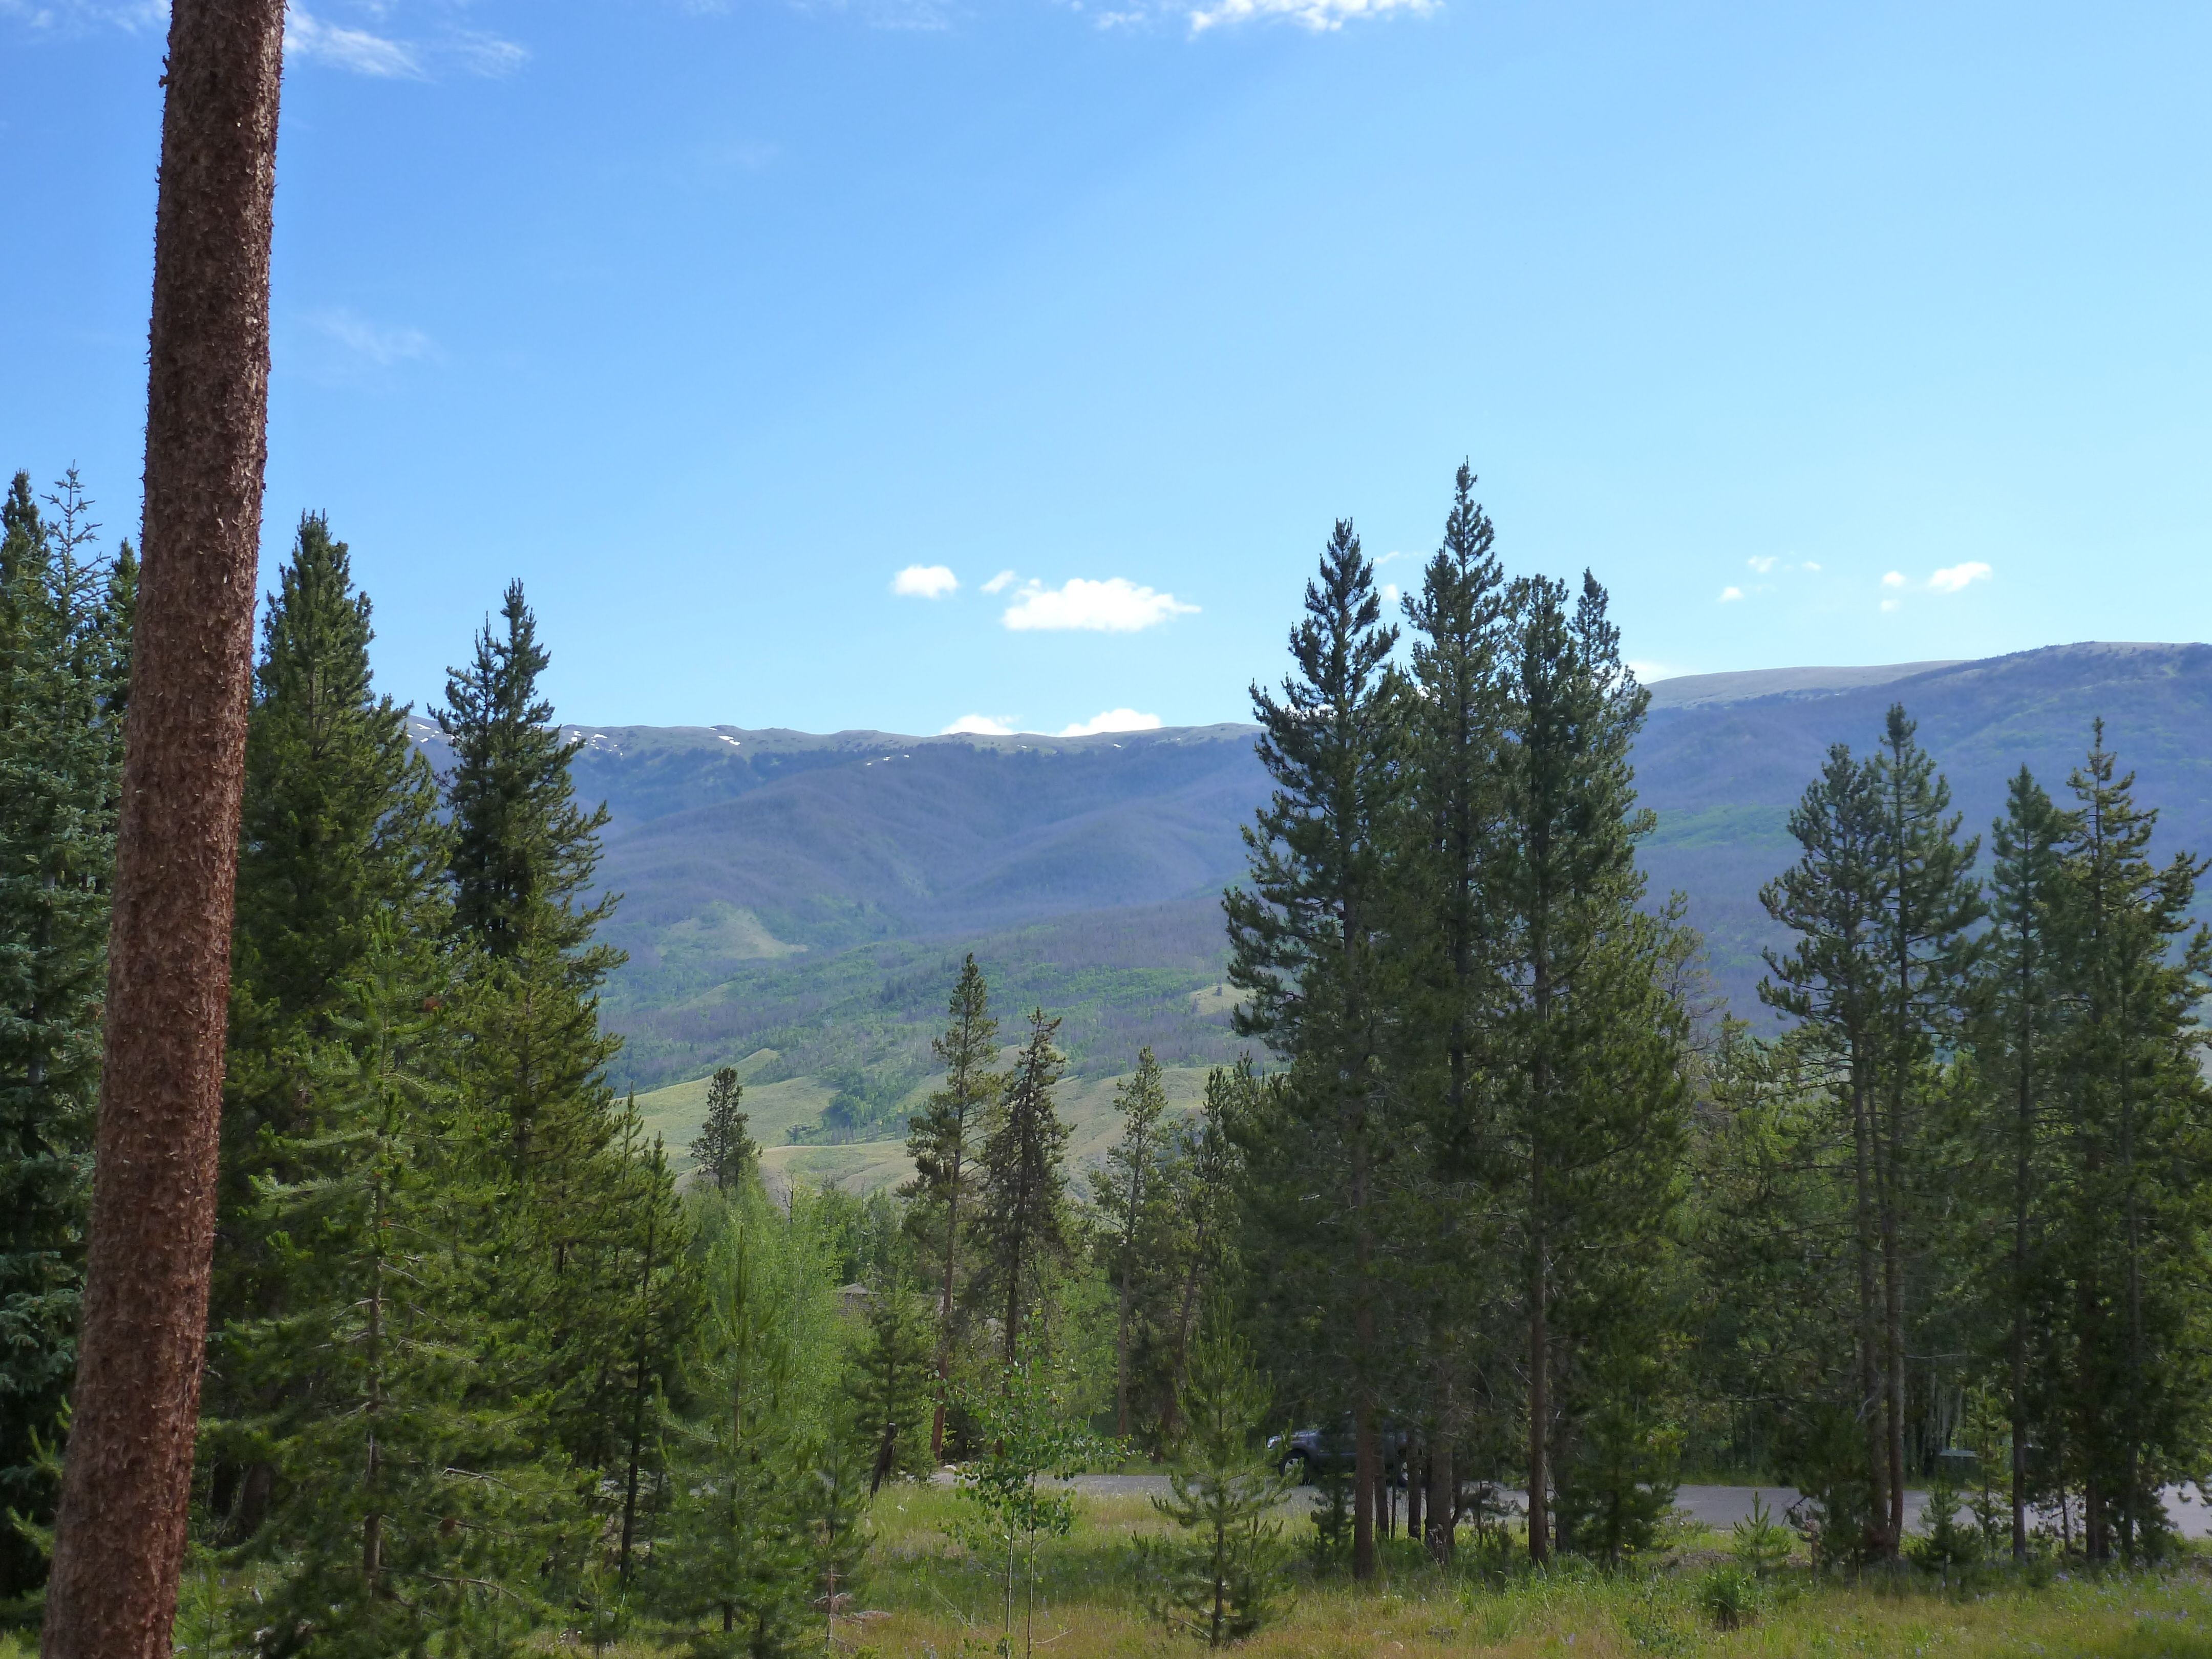 200 EASY BEND TRAIL SILVERTHORNE, Colorado 80498